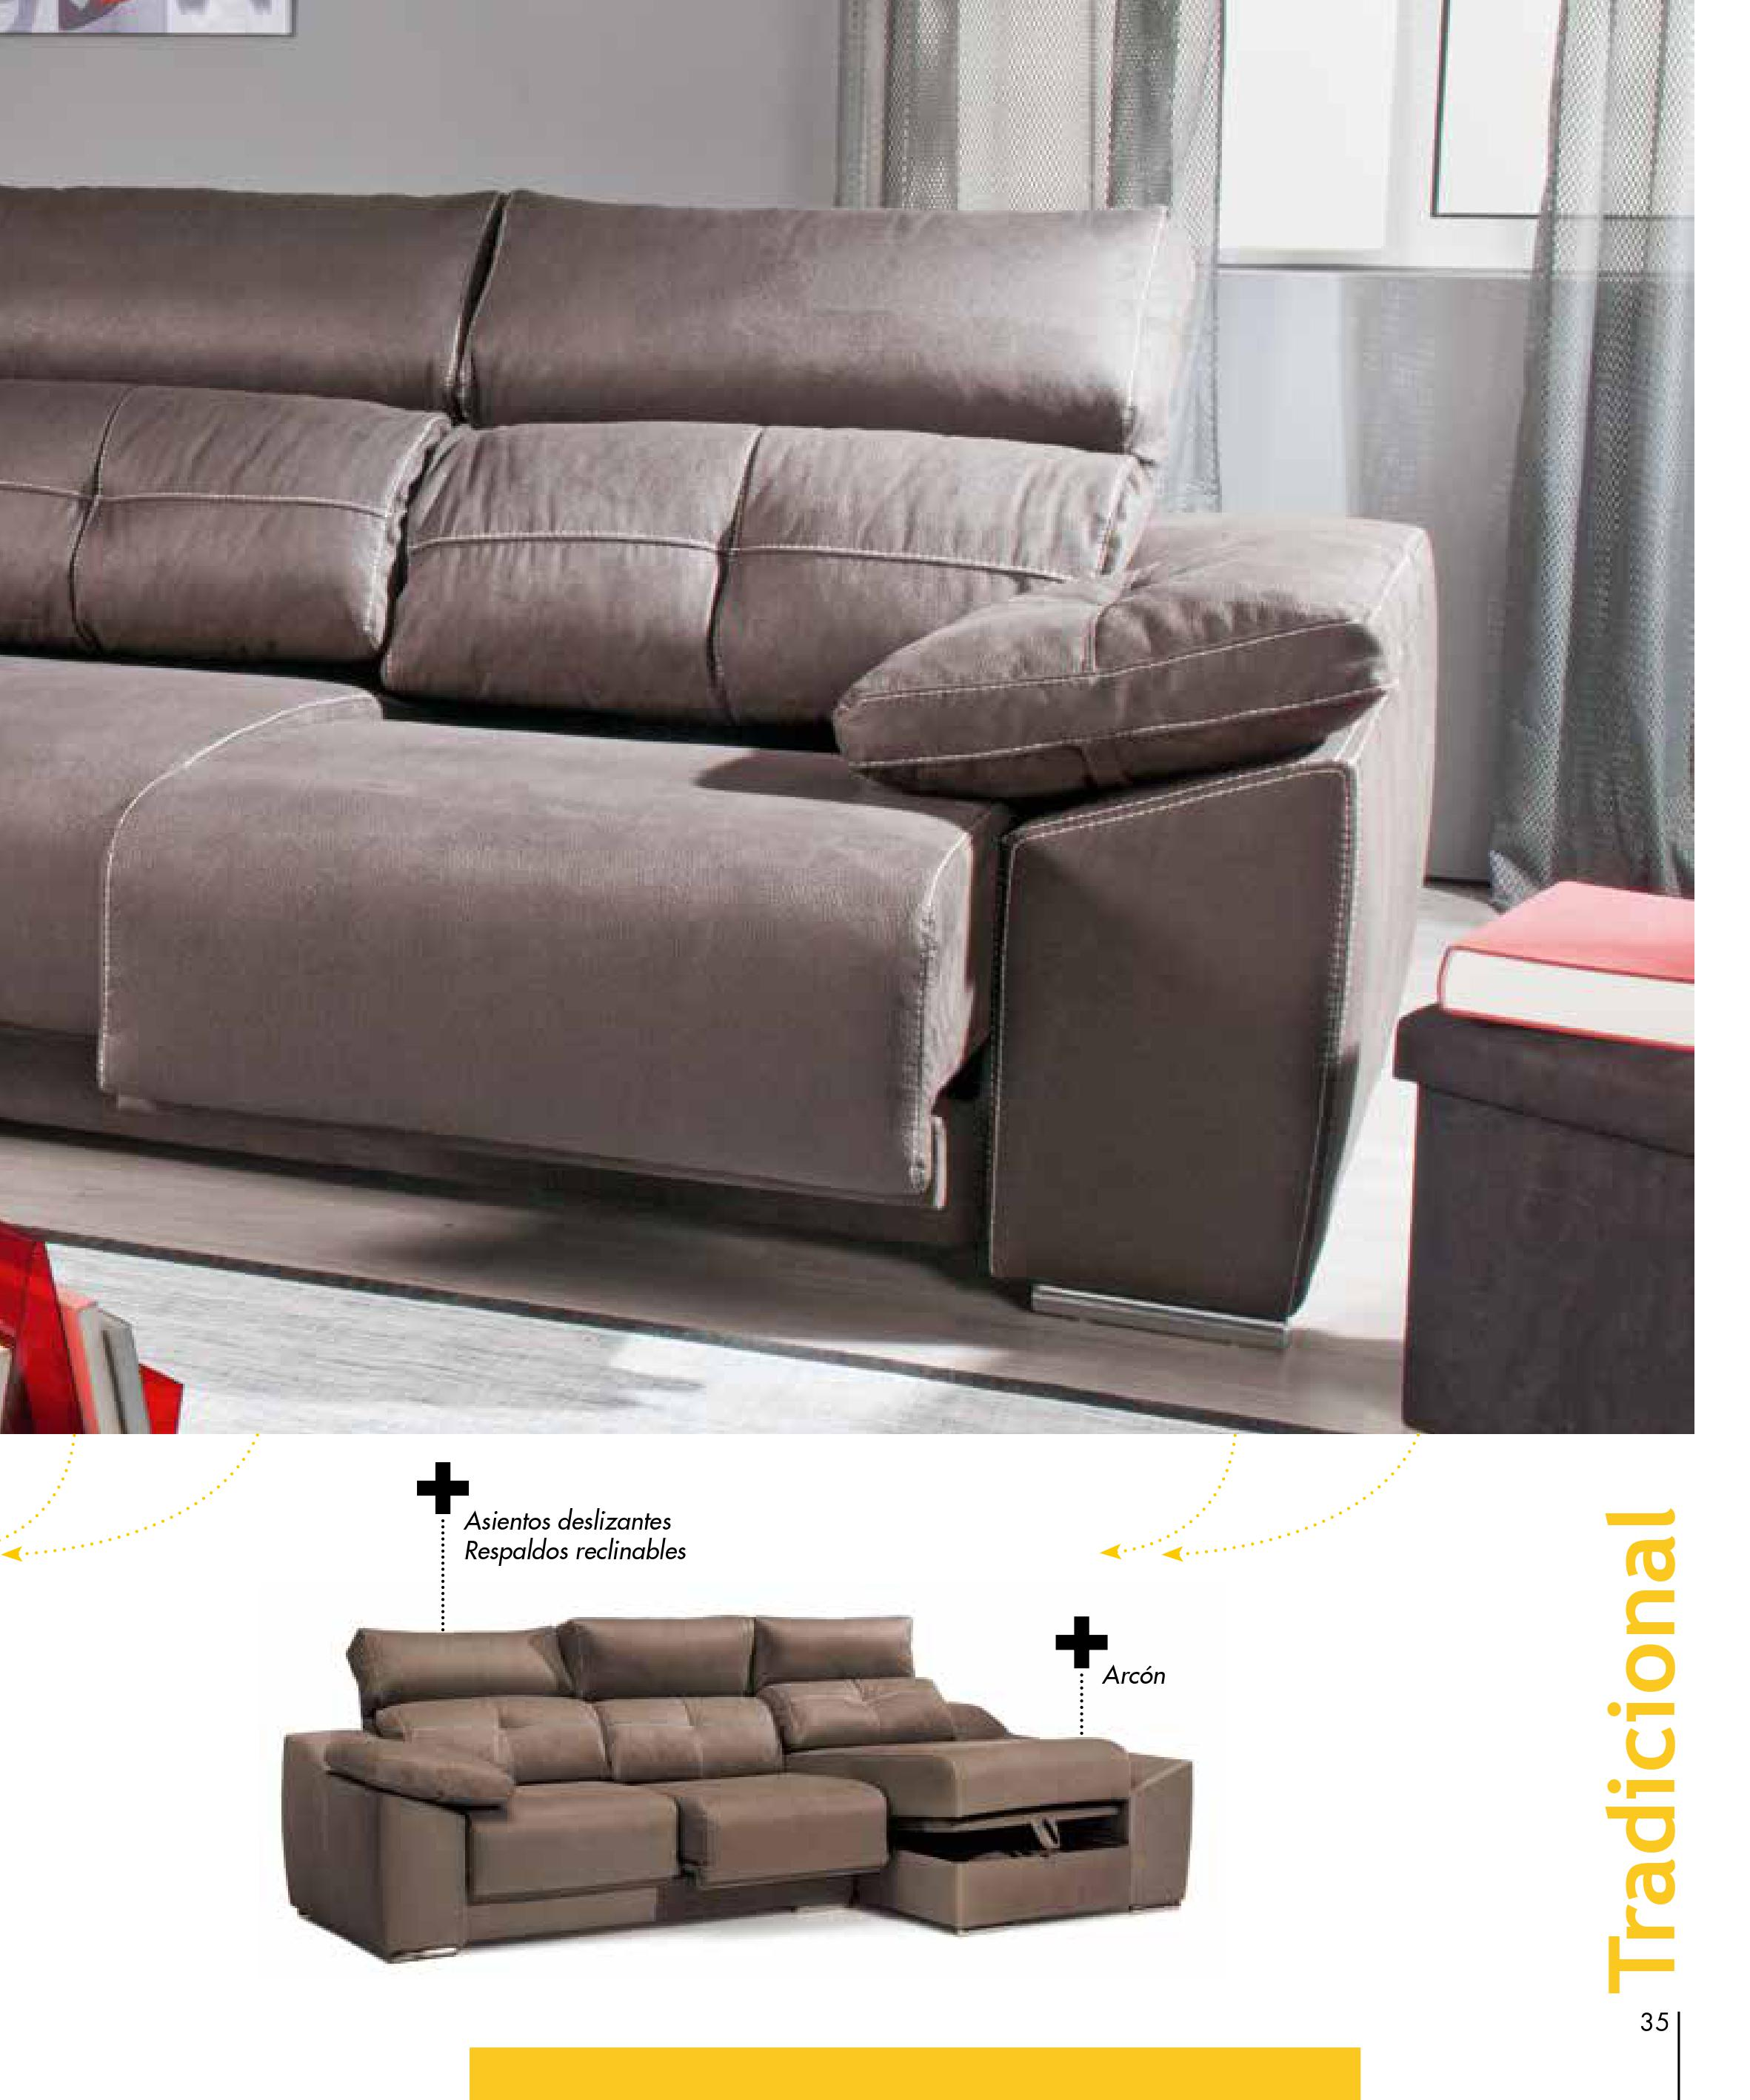 Sofas conforama 201535 for Sofas conforama catalogo